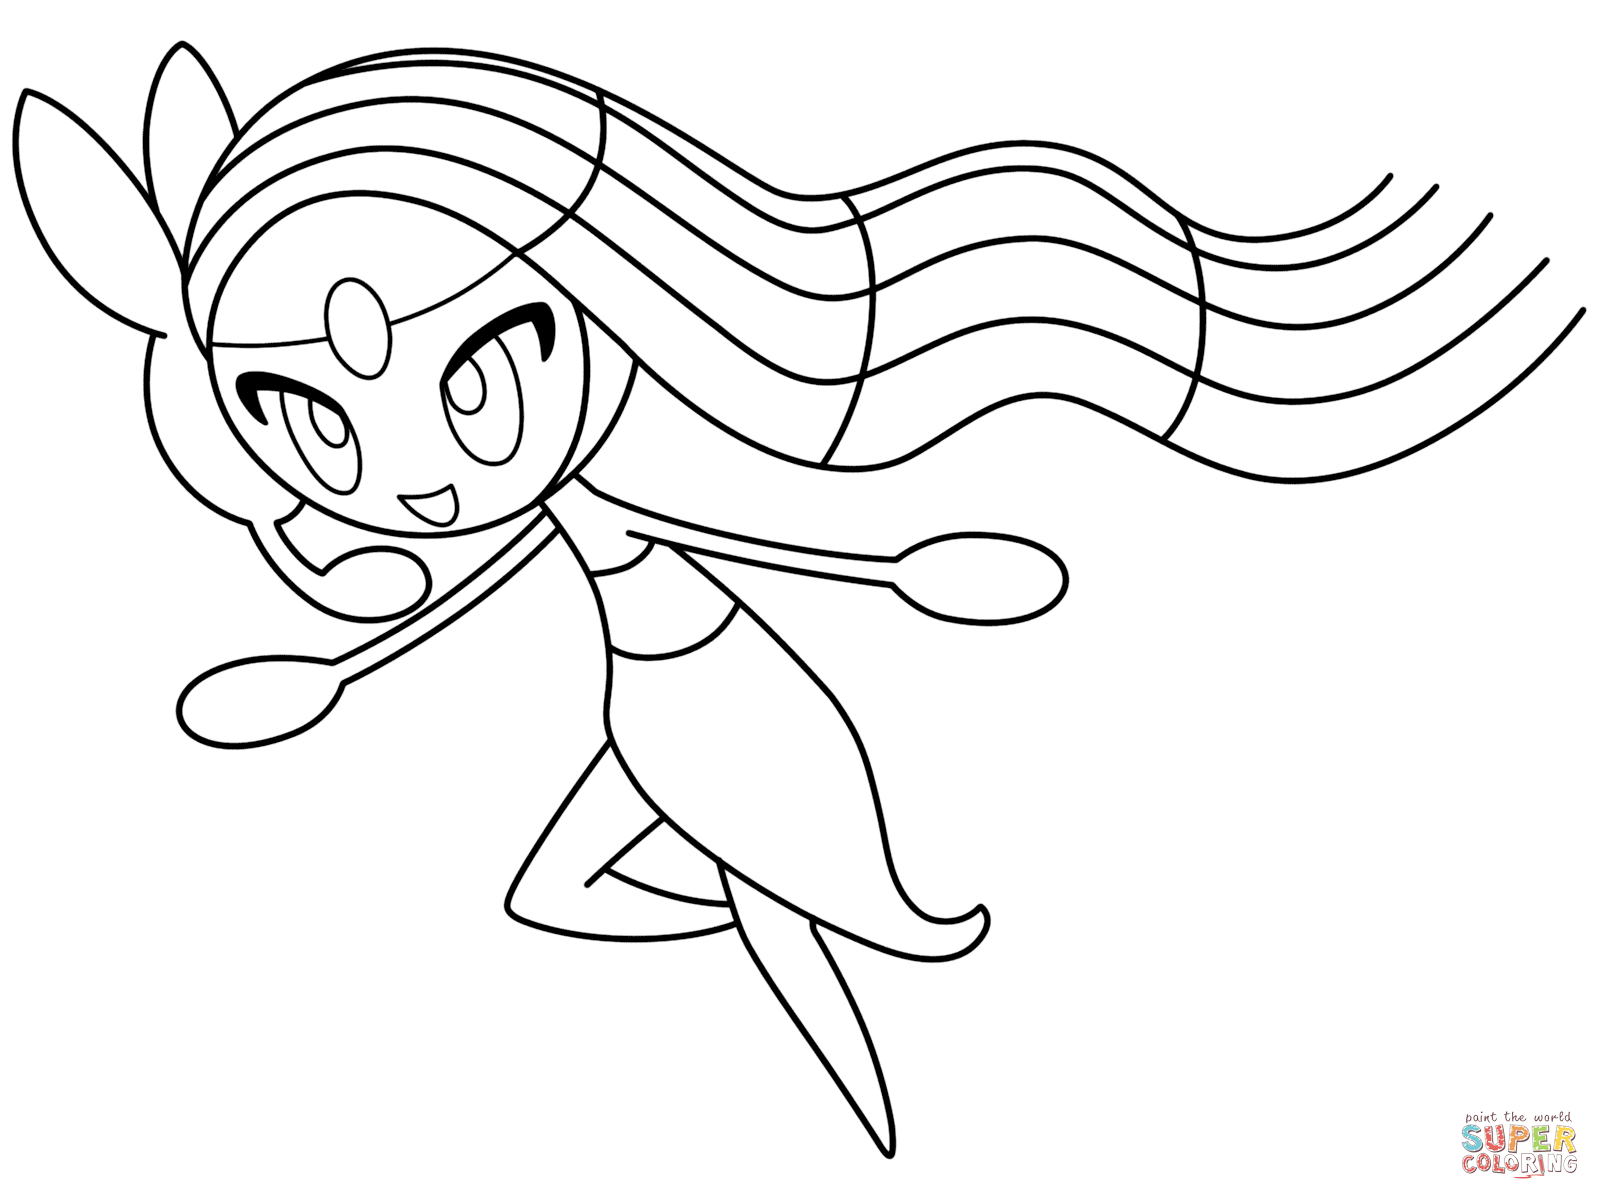 Latios Coloring Page At Getdrawings Com Free For Personal Use